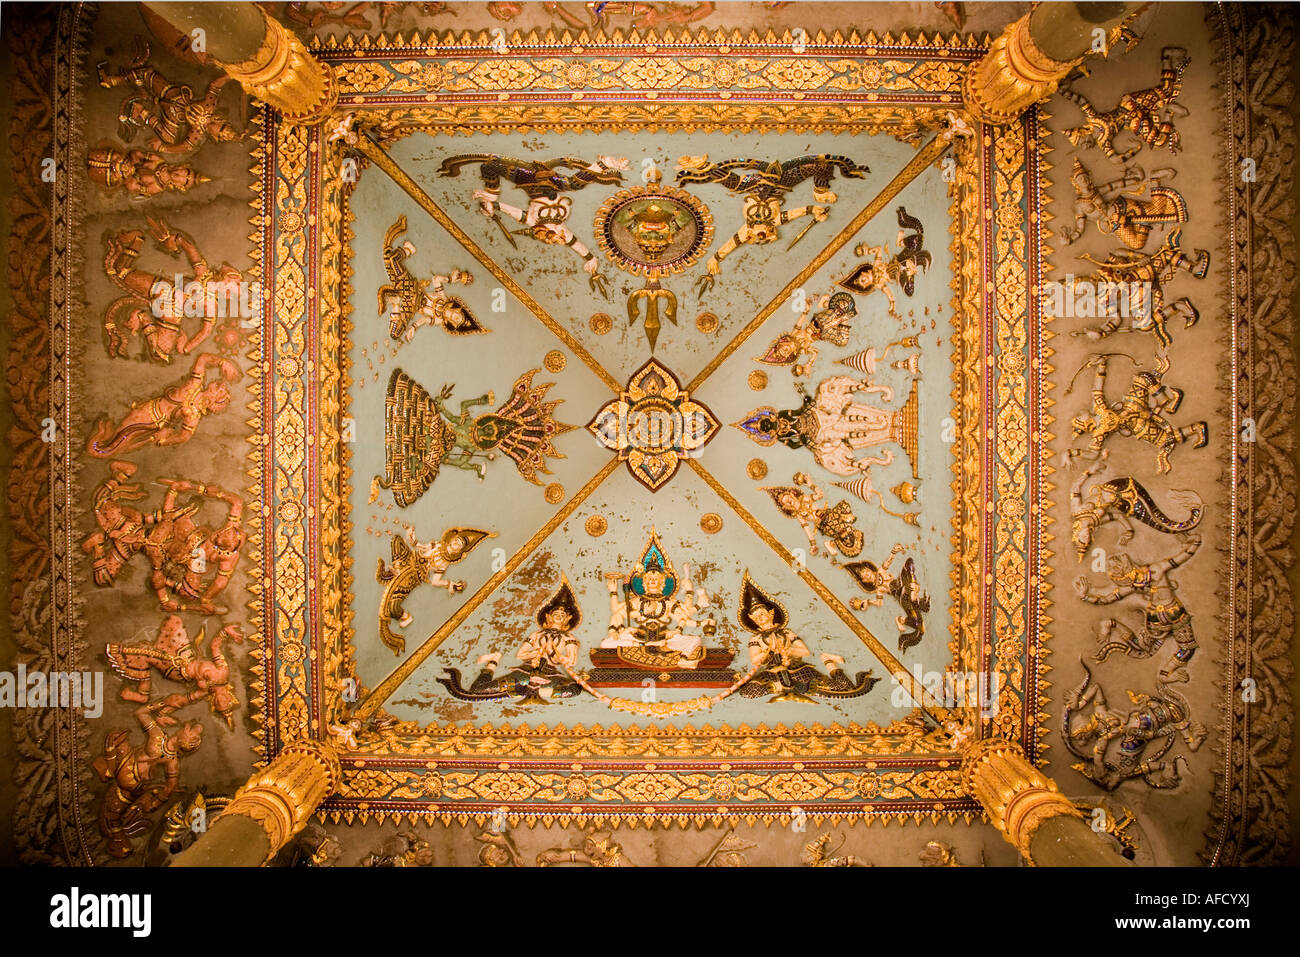 Ceiling decoration of the Patuxai monument Vientiane seen from the ground, Laos. - Stock Image